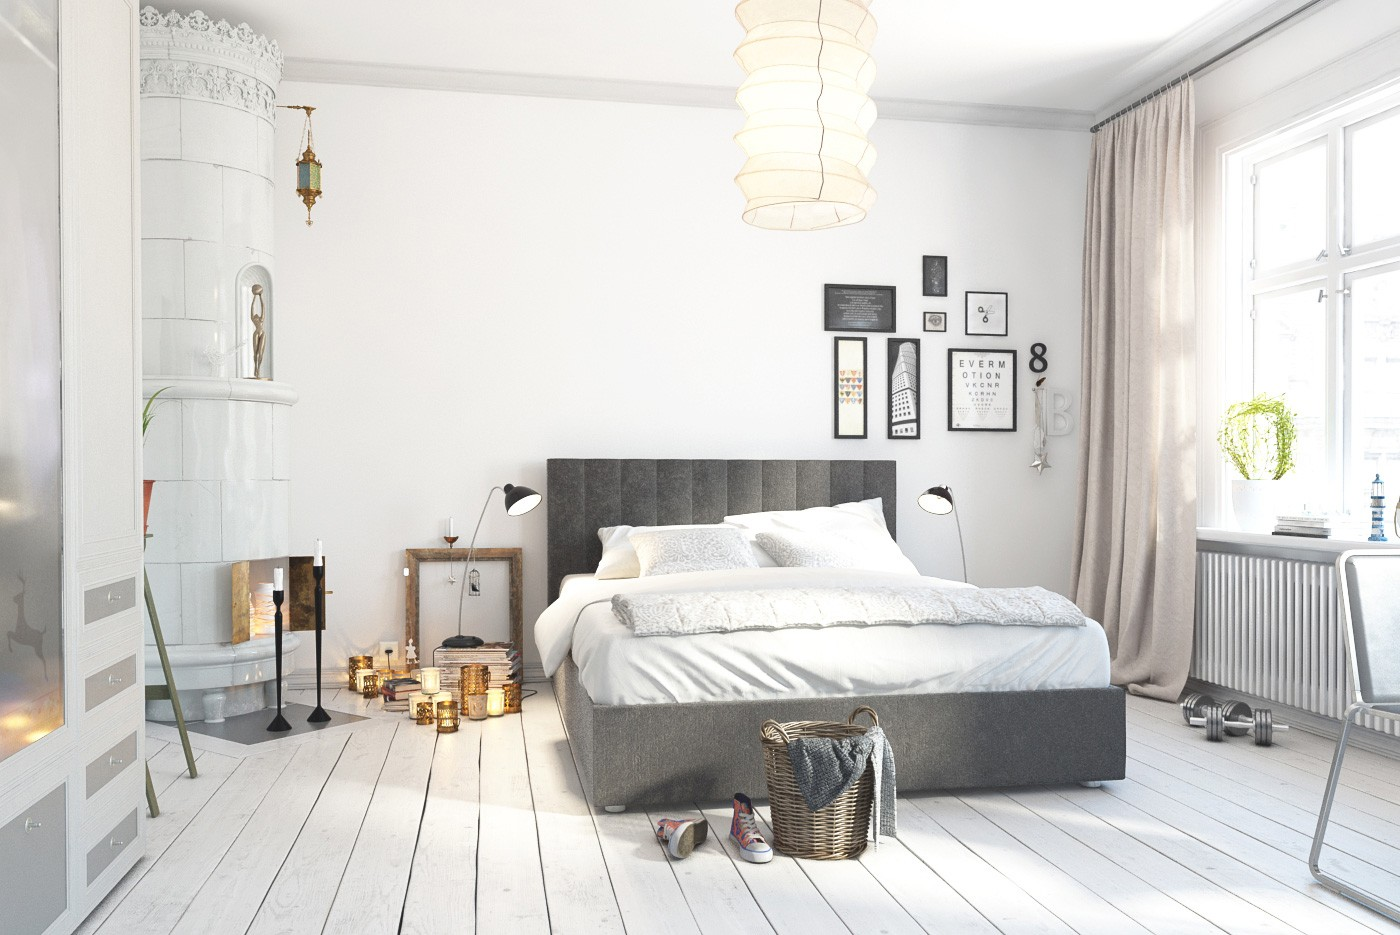 3. Lovely Bedrooms For Couples